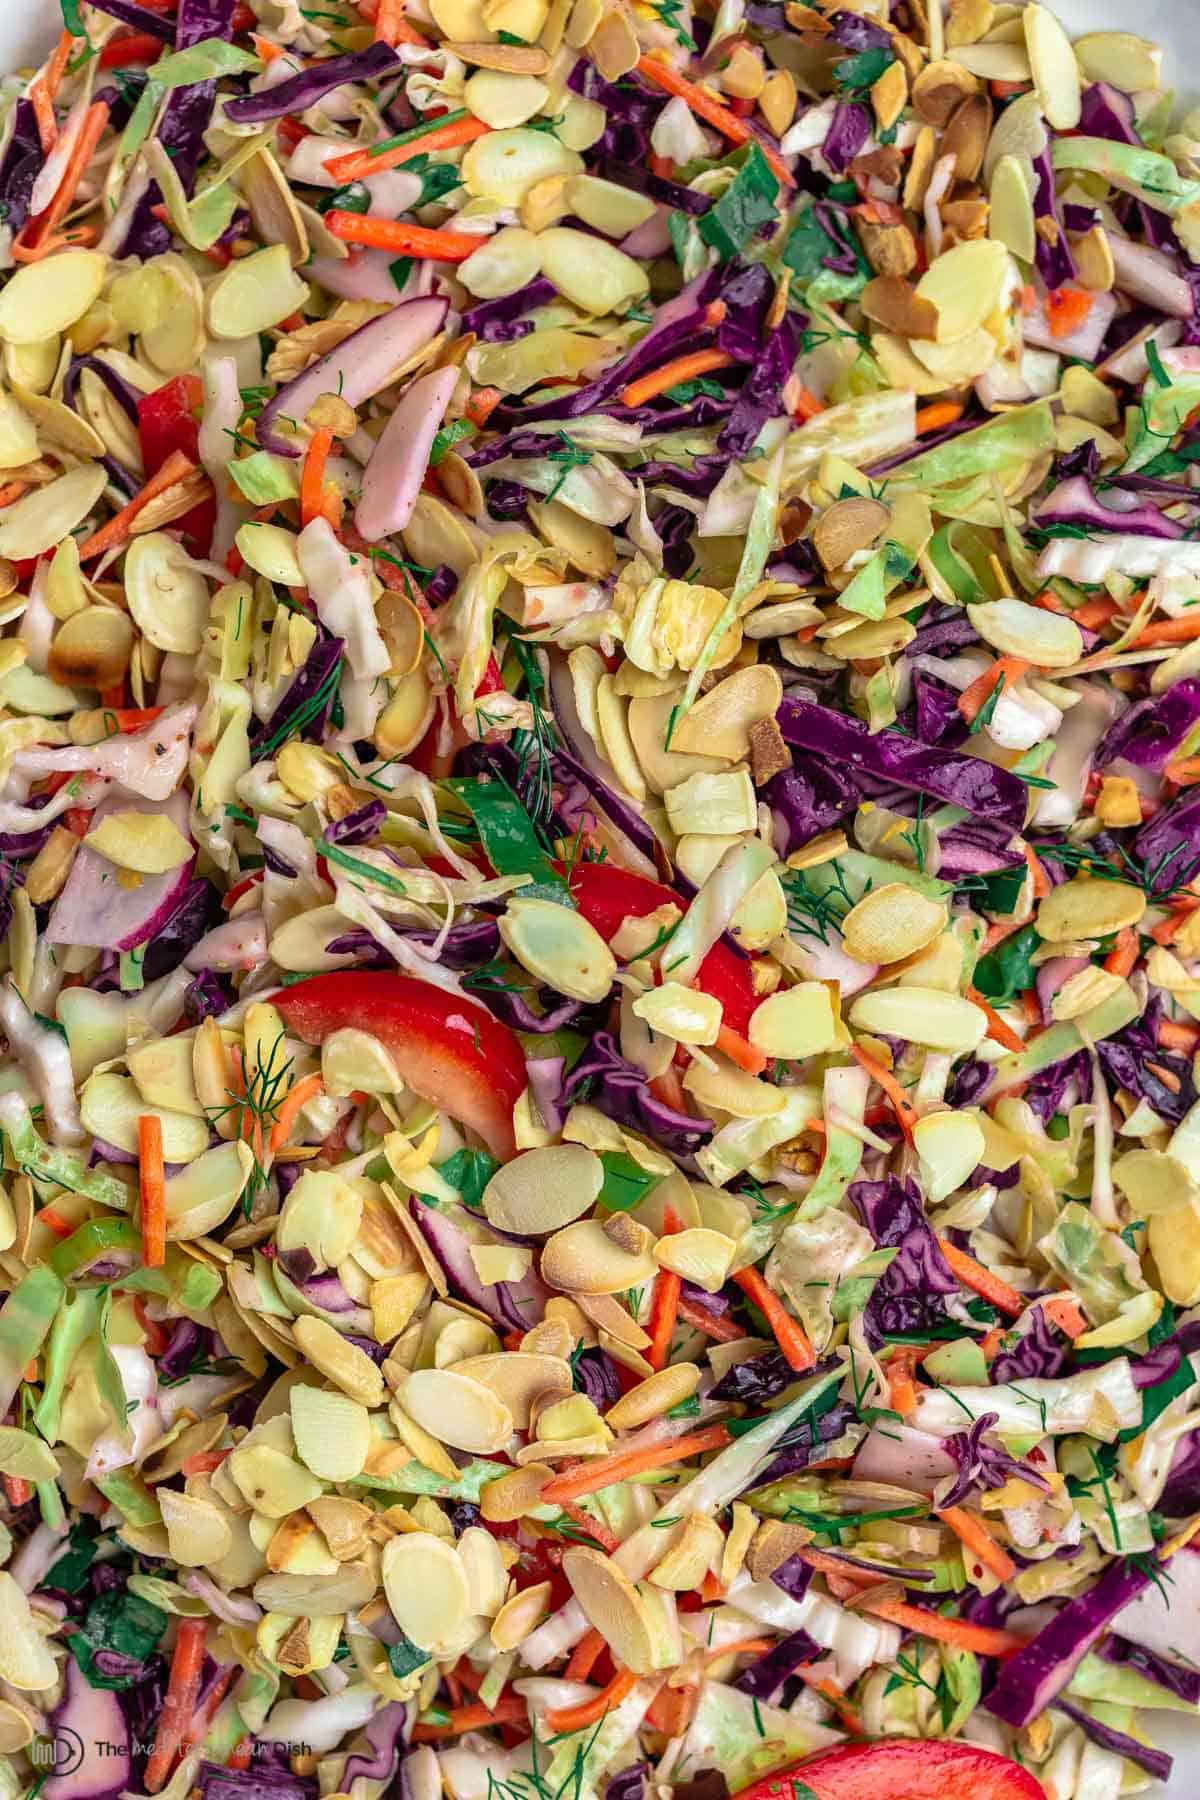 Close-up of a Mediterranean Cabbage Salad with sliced almonds, cabbage, red peppers, radishes and carrots